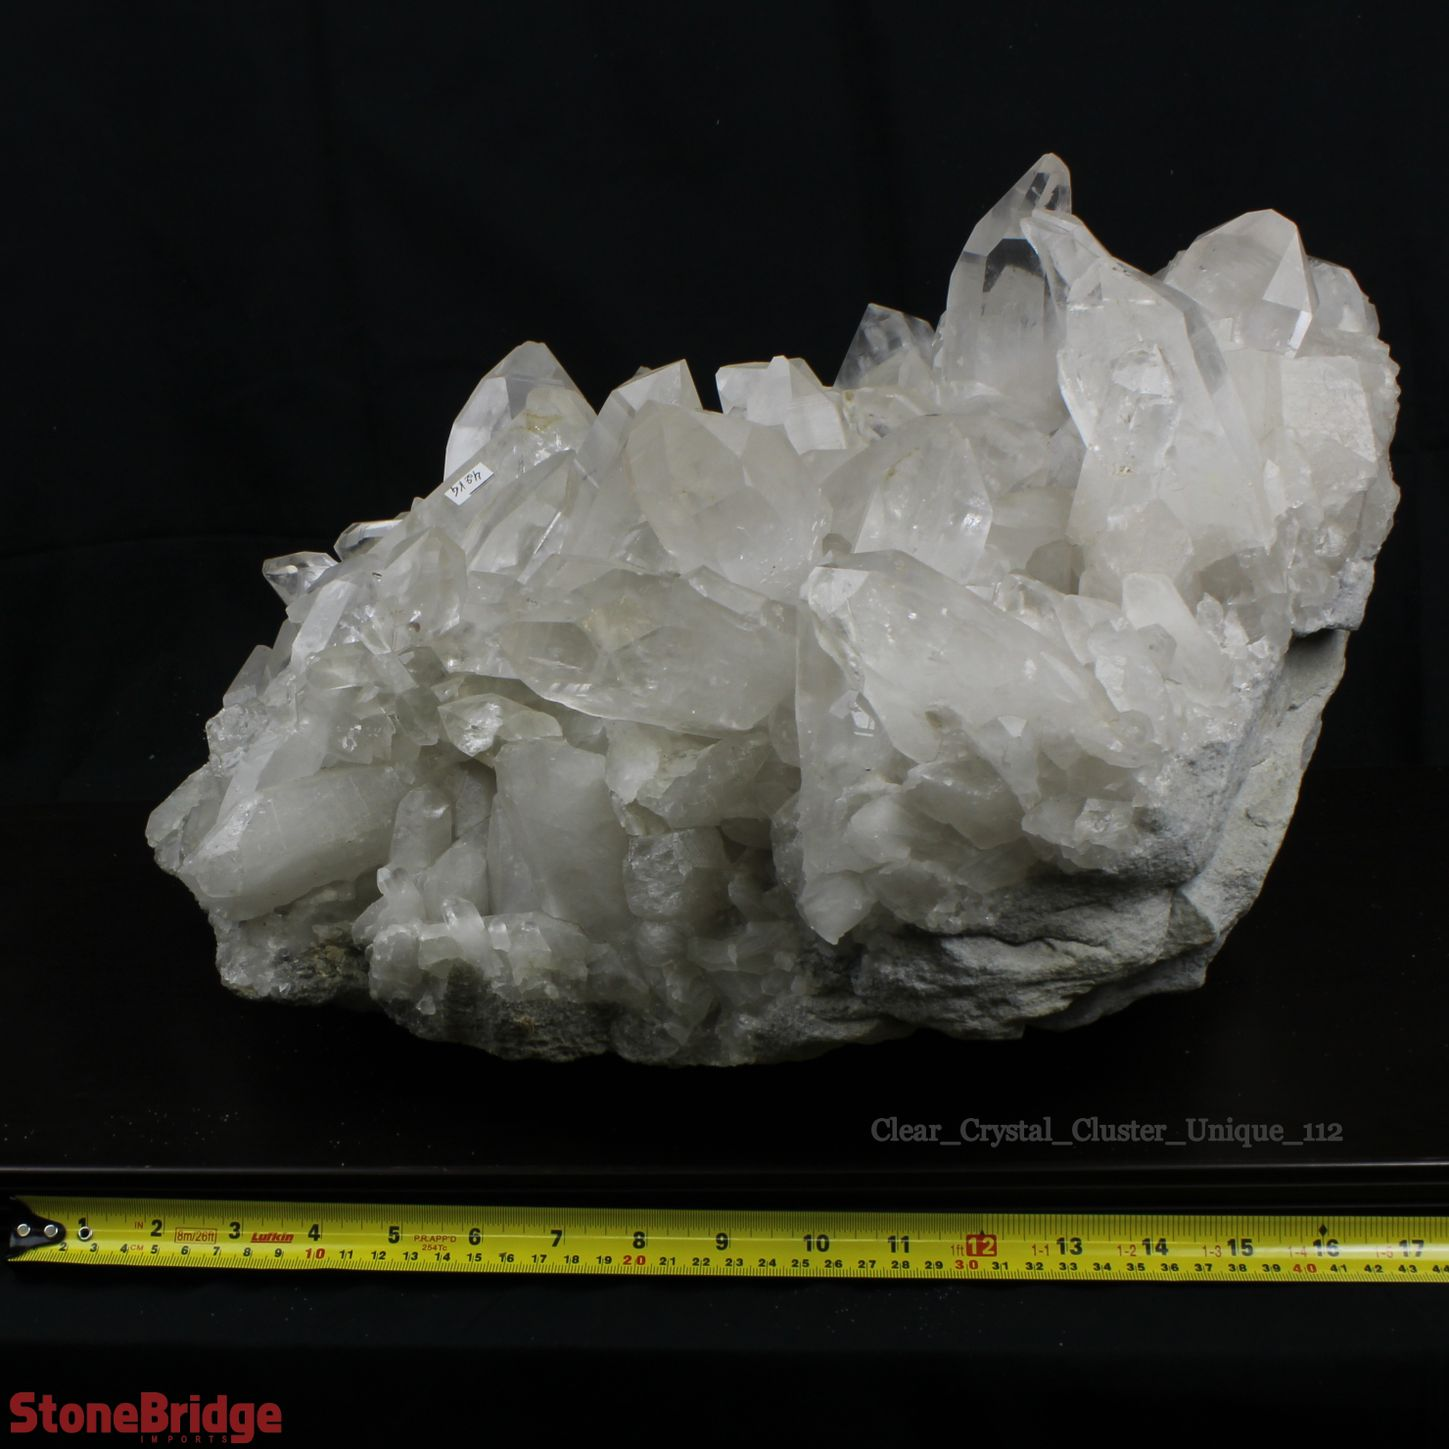 CLCRU112_Clear_Crystal_Cluster_Unique_11210.jpg